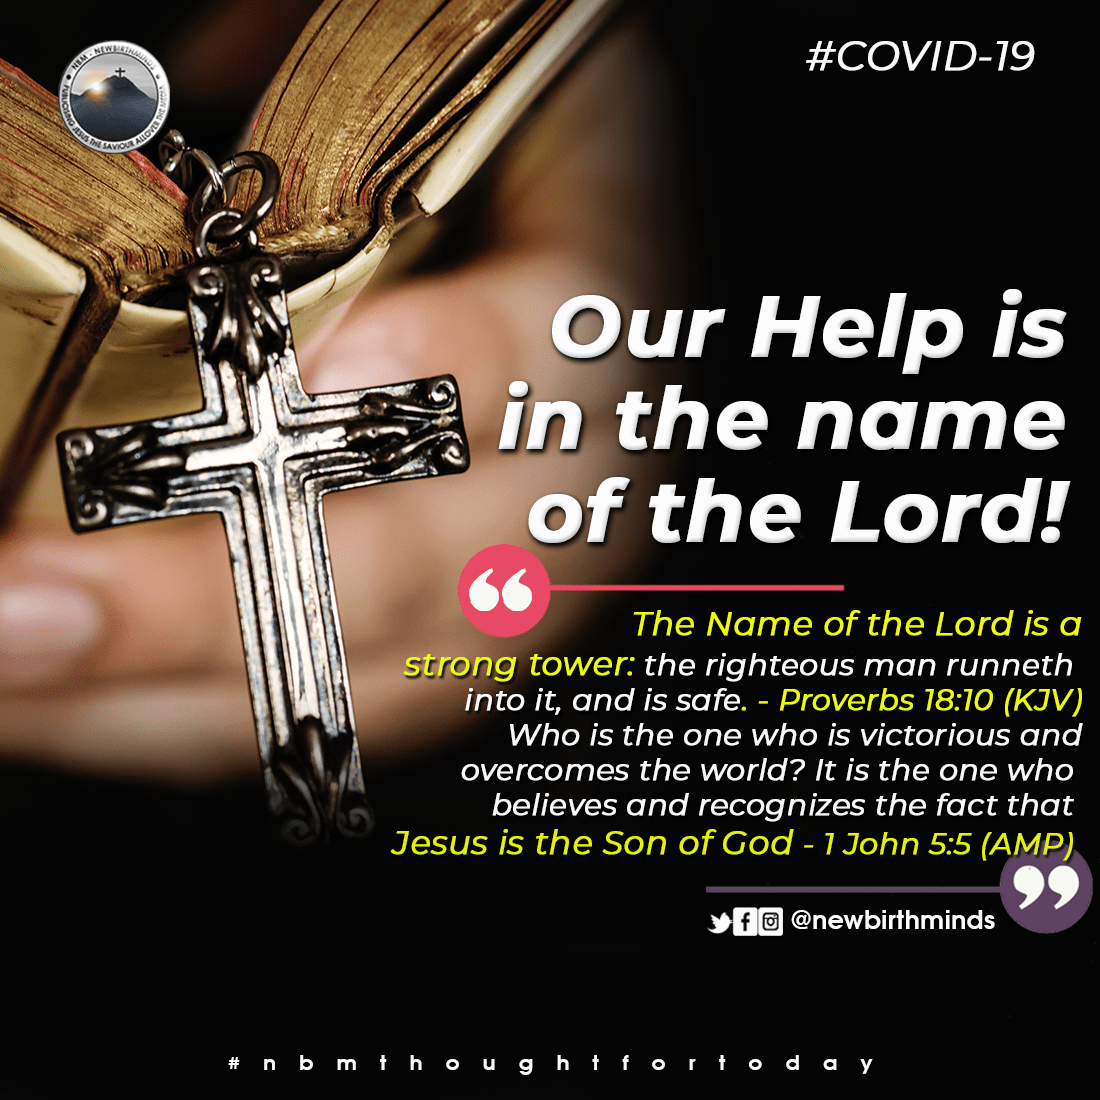 OUR HELP IS IN THE NAME OF THE LORD!